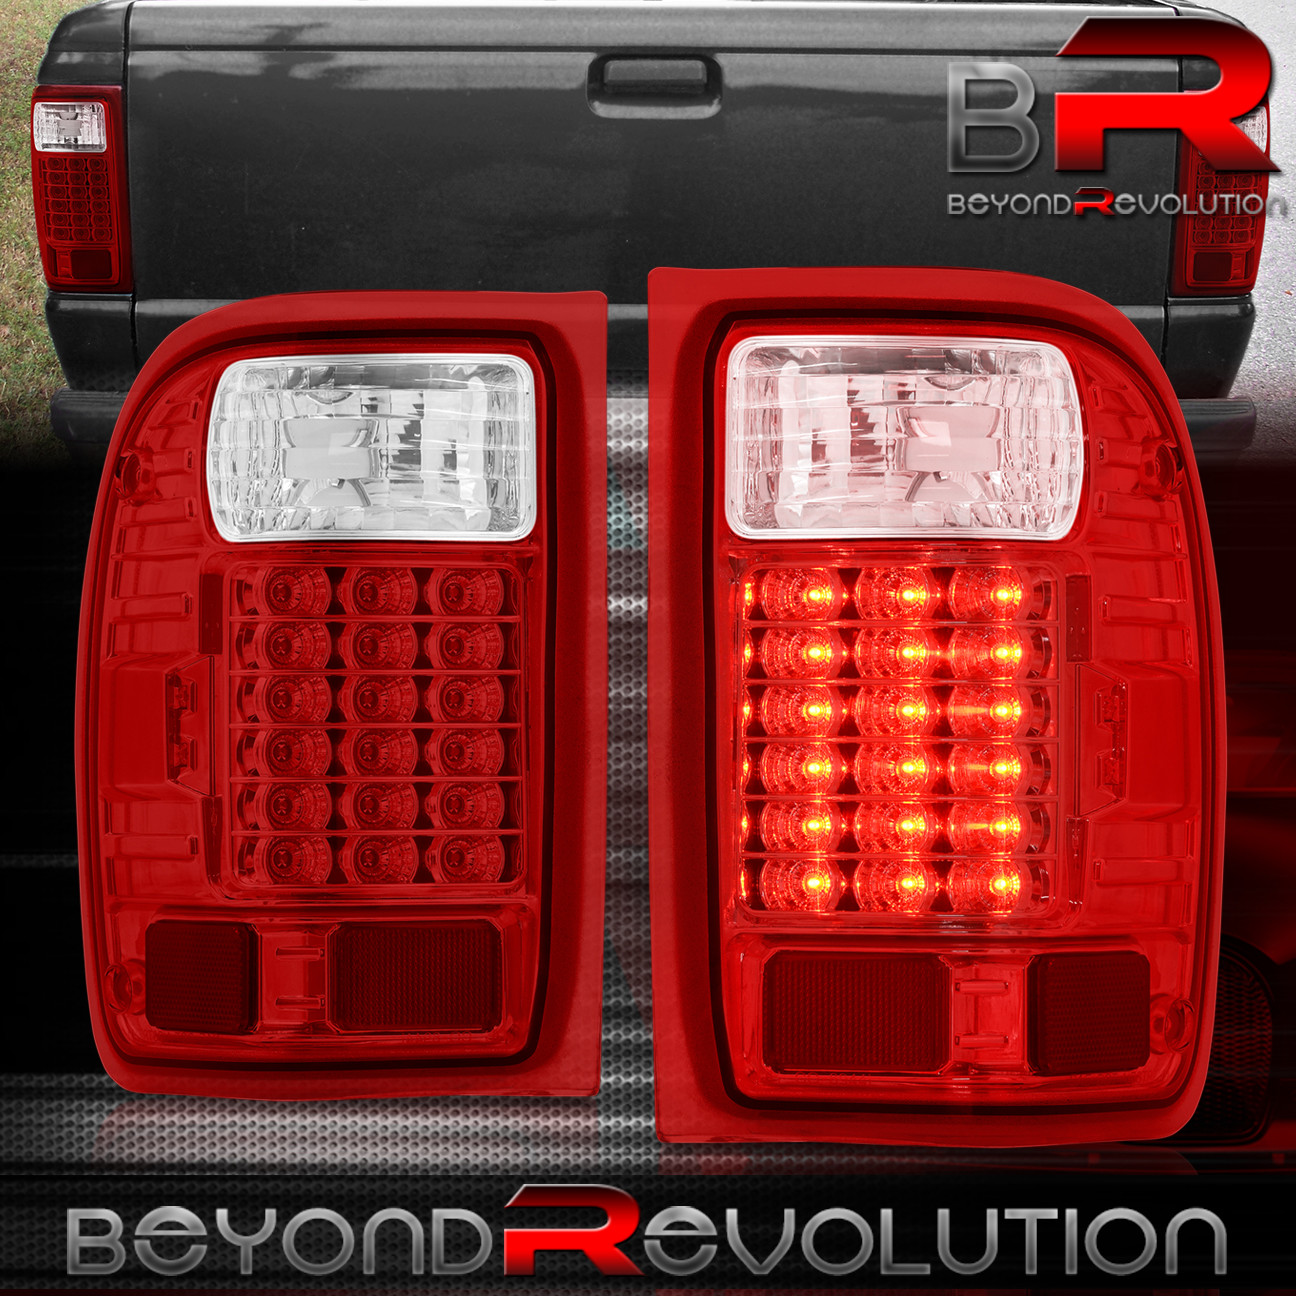 93 99 Ford Ranger Led Tail Lights Lamp Housing Red Clear Lens Replacement Pair